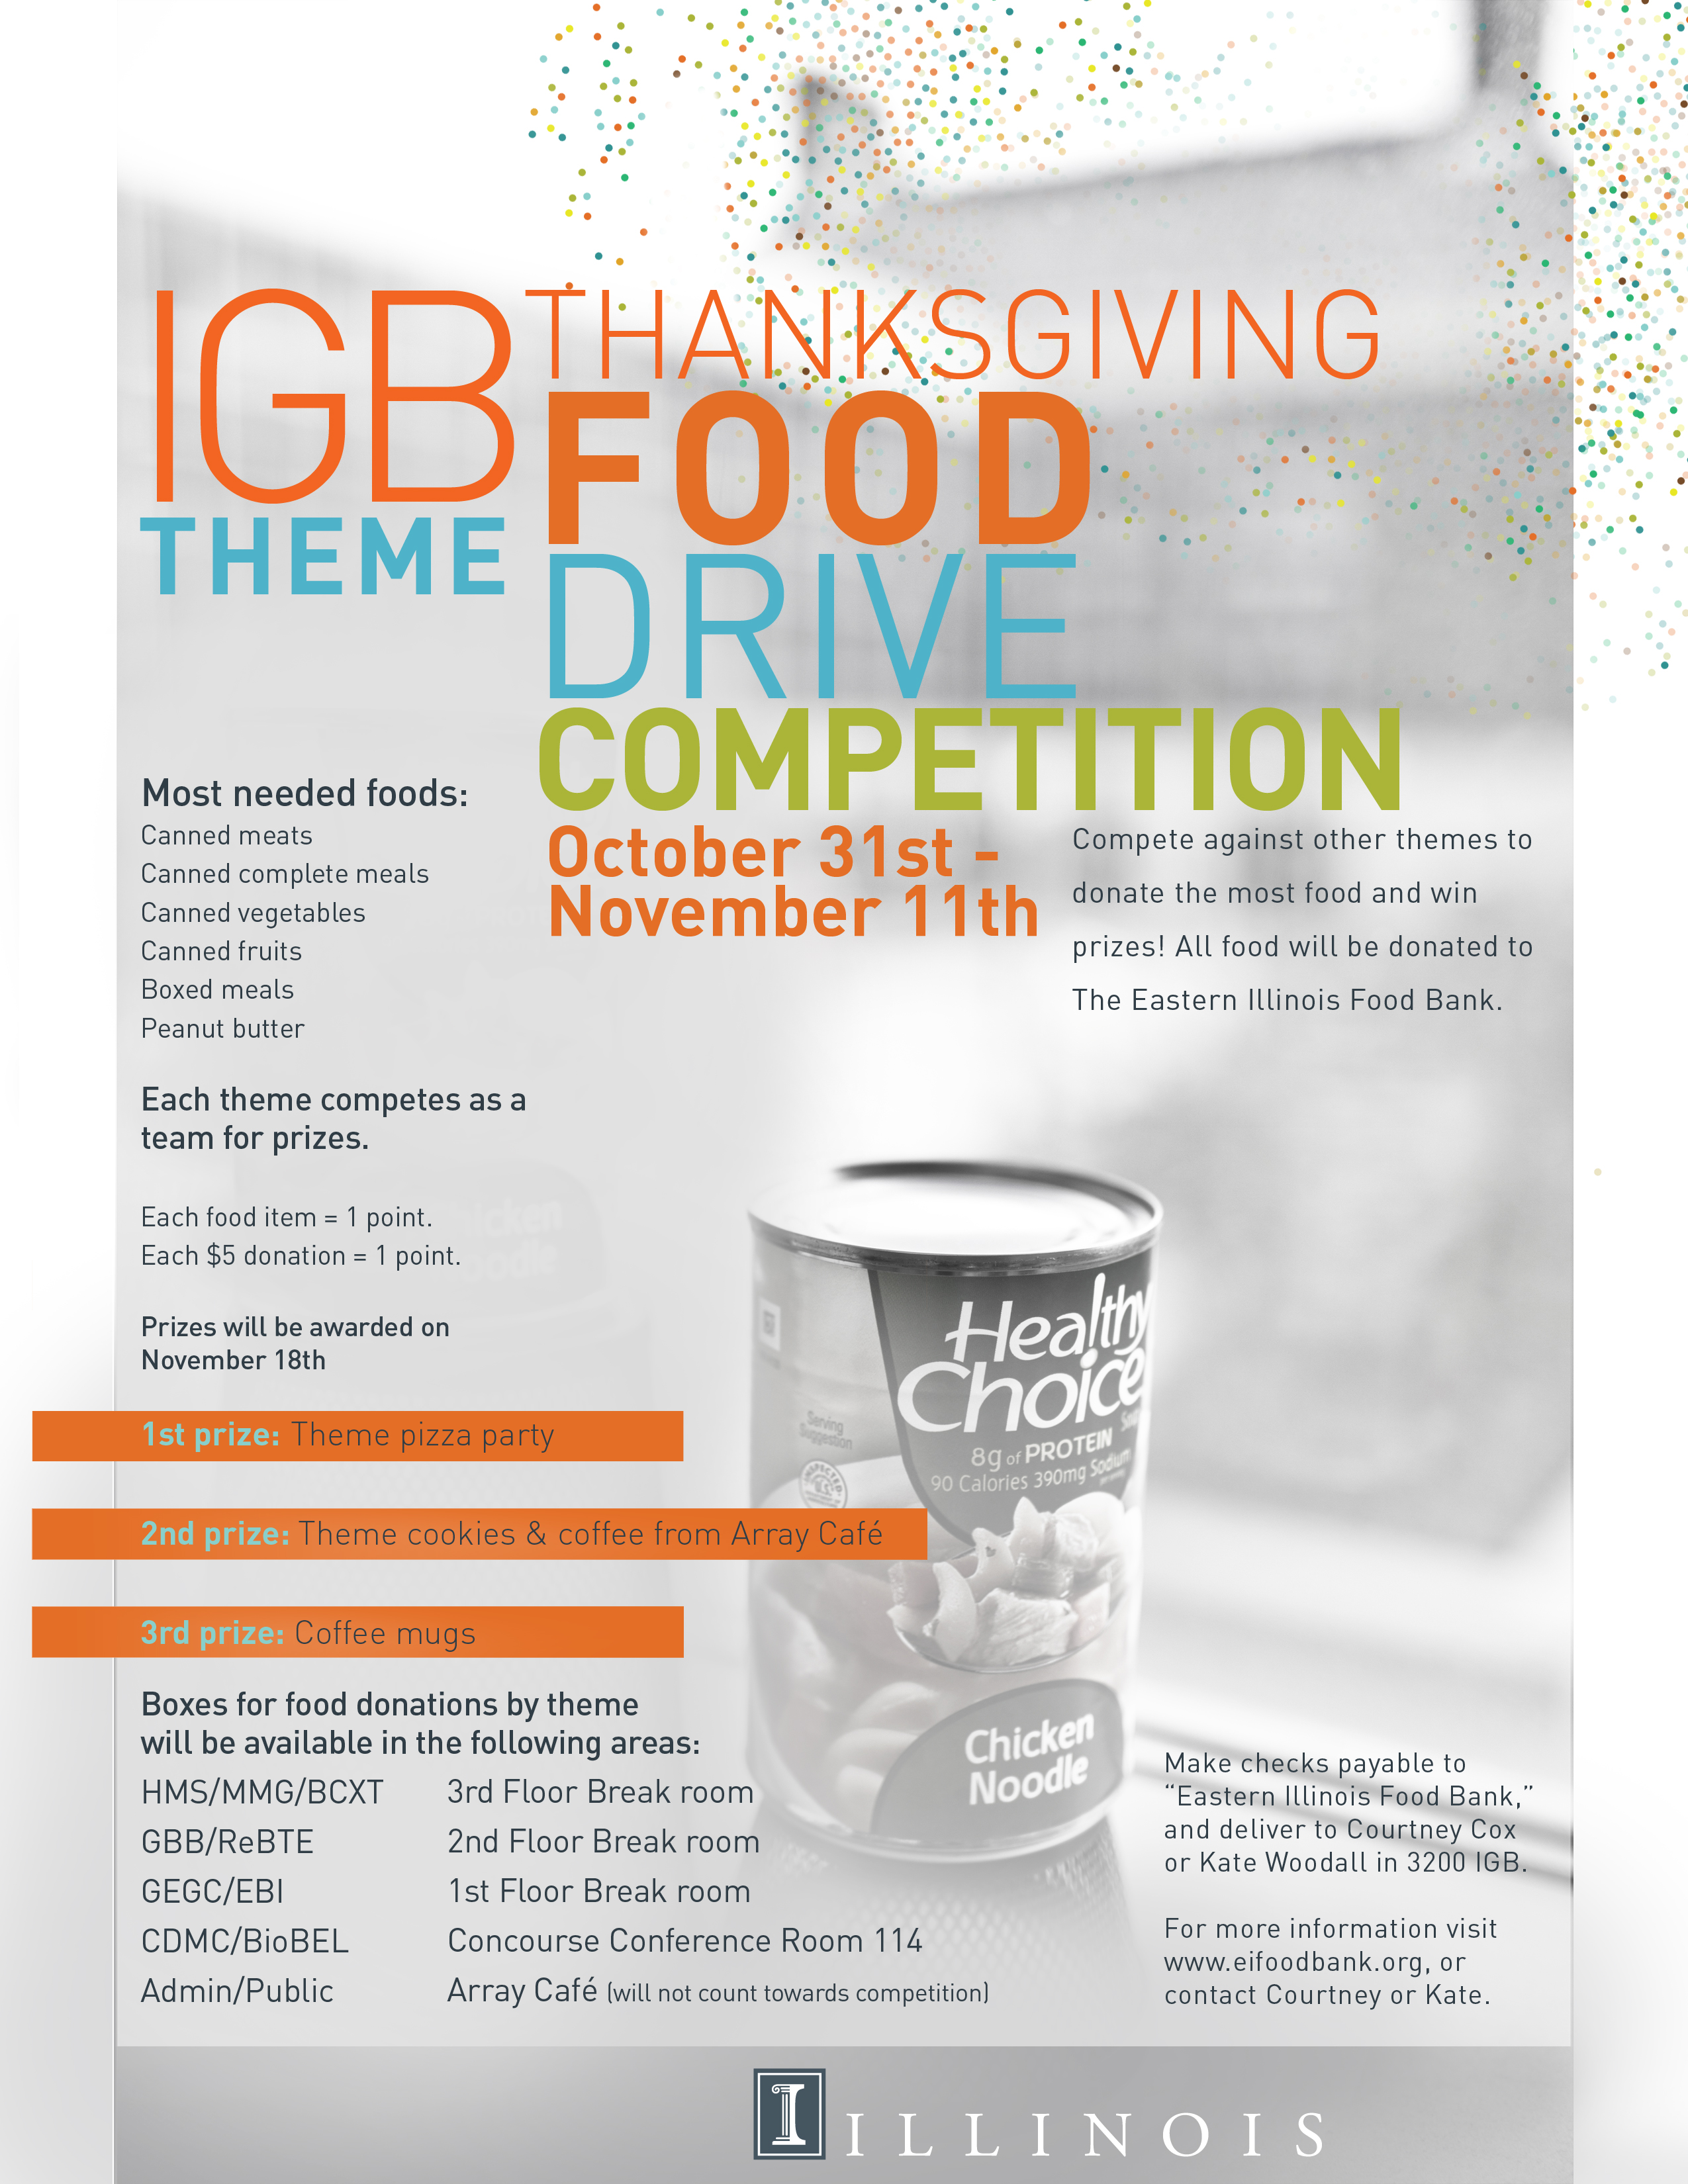 IGB Theme Thanksgiving Food Drive Competition